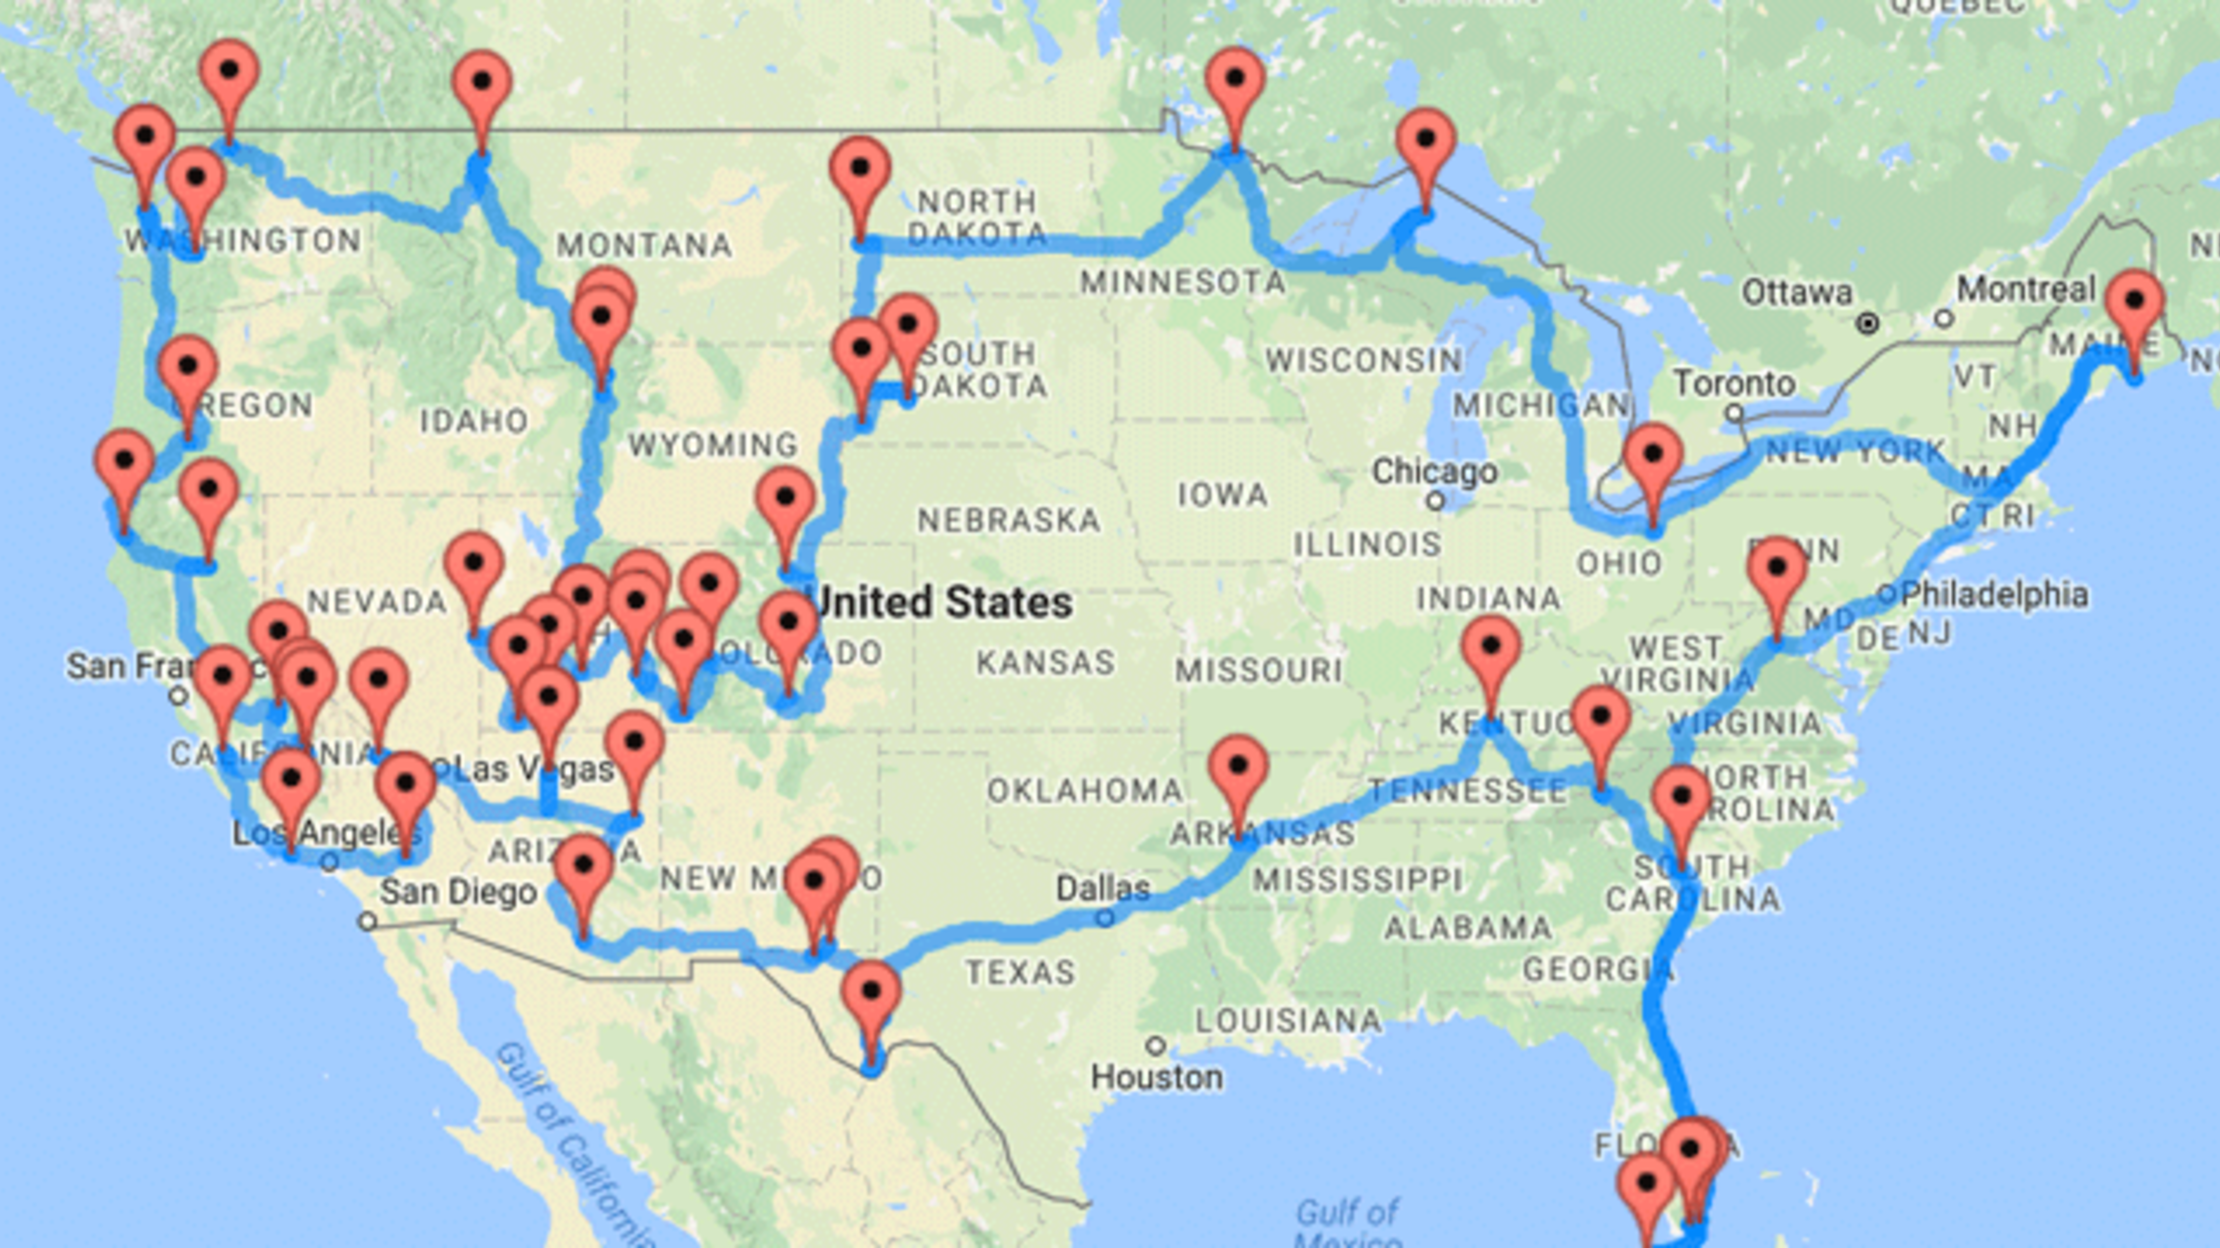 Us Road Map With National Parks Road Trip Genius Calculates the Shortest Route Through 47 National